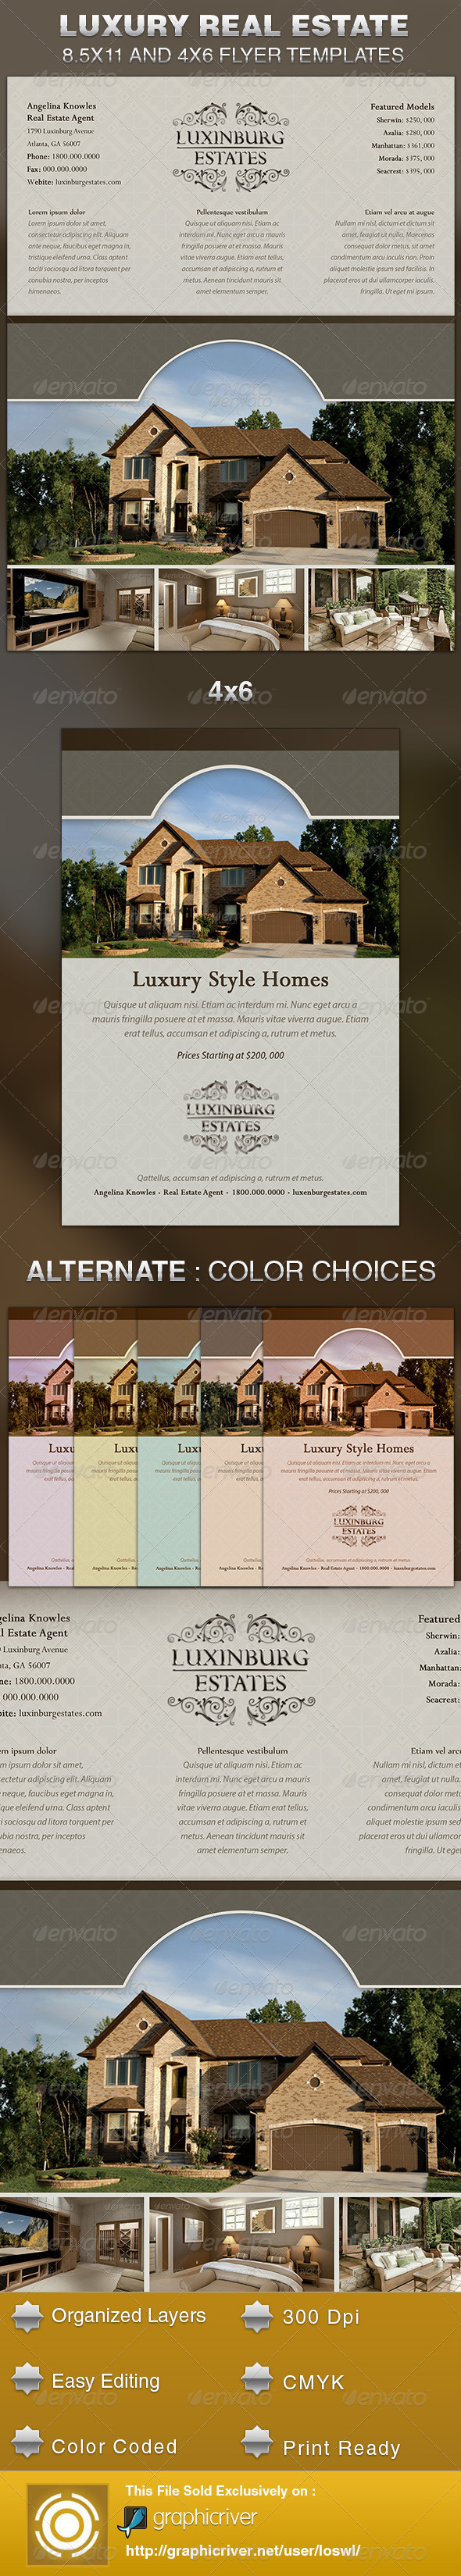 Luxury real estate flyer template graphicriver for Real estate just sold flyer templates